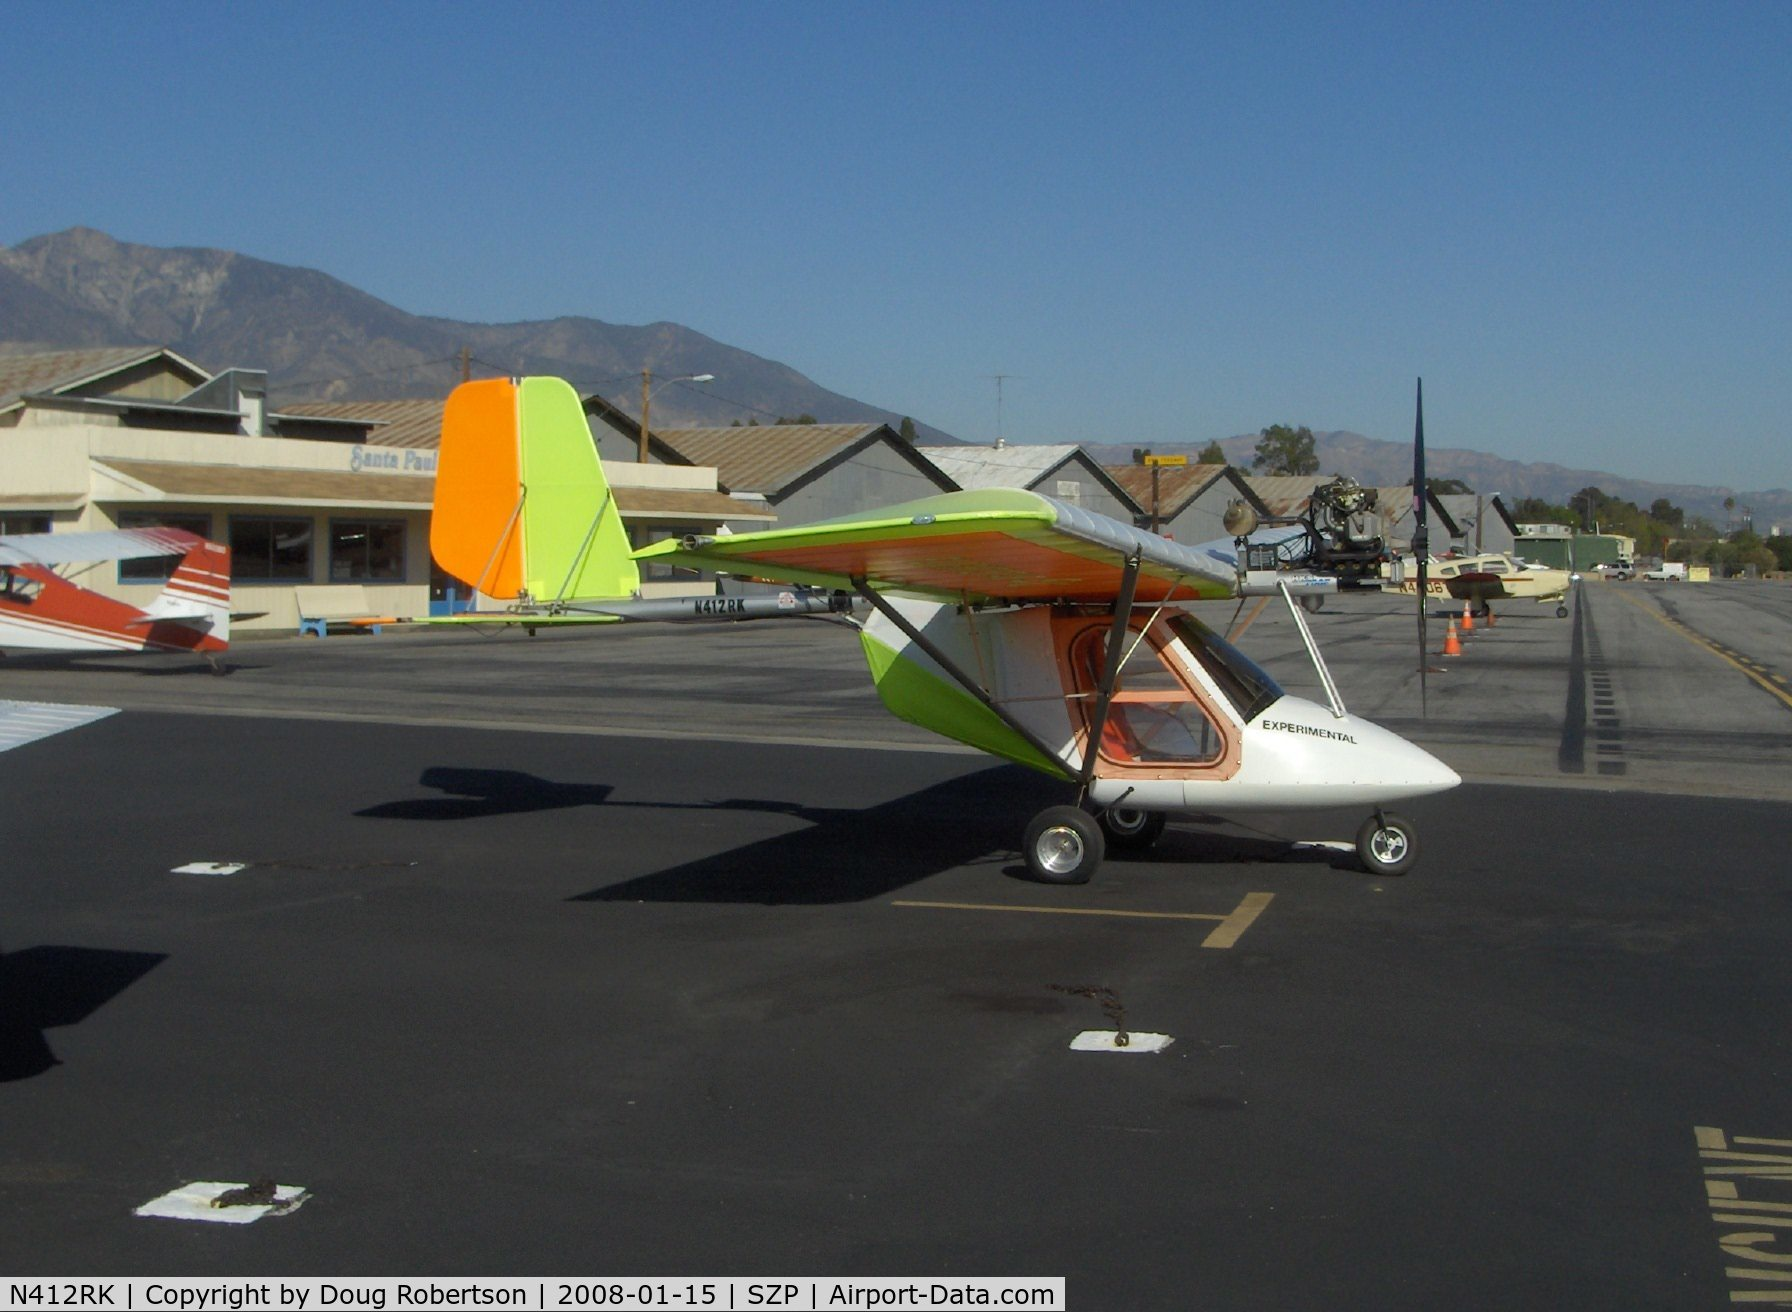 Two Place Ultralight Aircraft http://www.airport-data.com/aircraft/photo/000150864.html